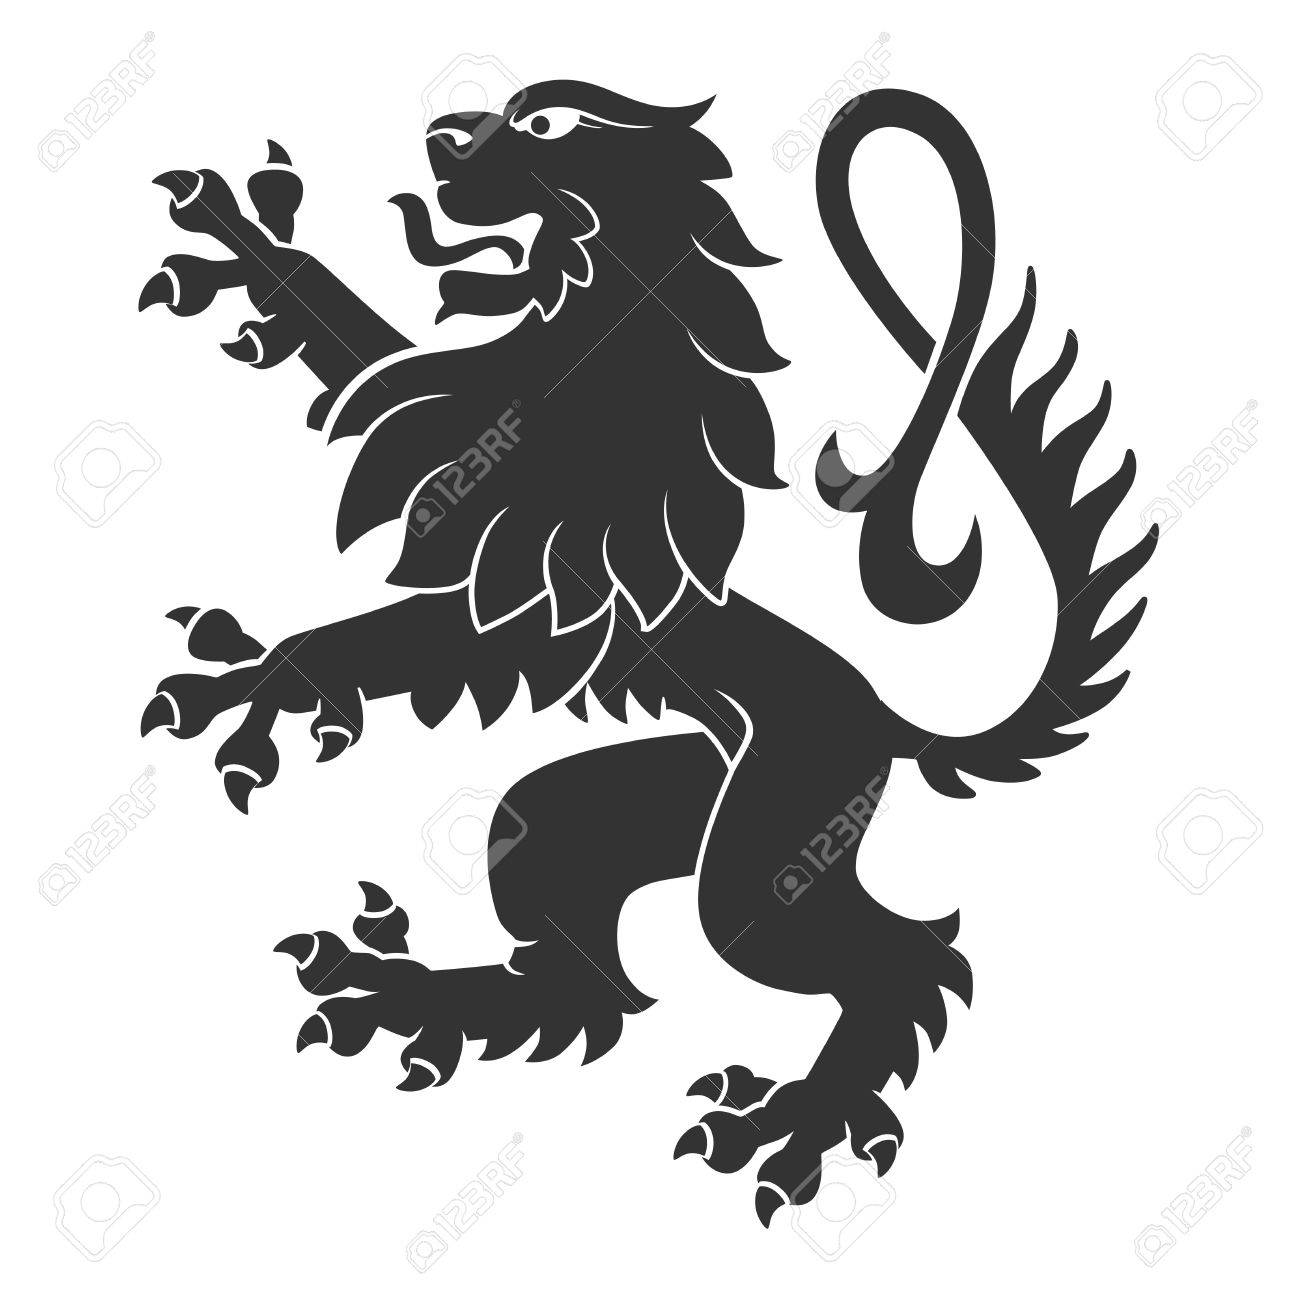 Black Standing Lion For Heraldry Or Tattoo Design Isolated On